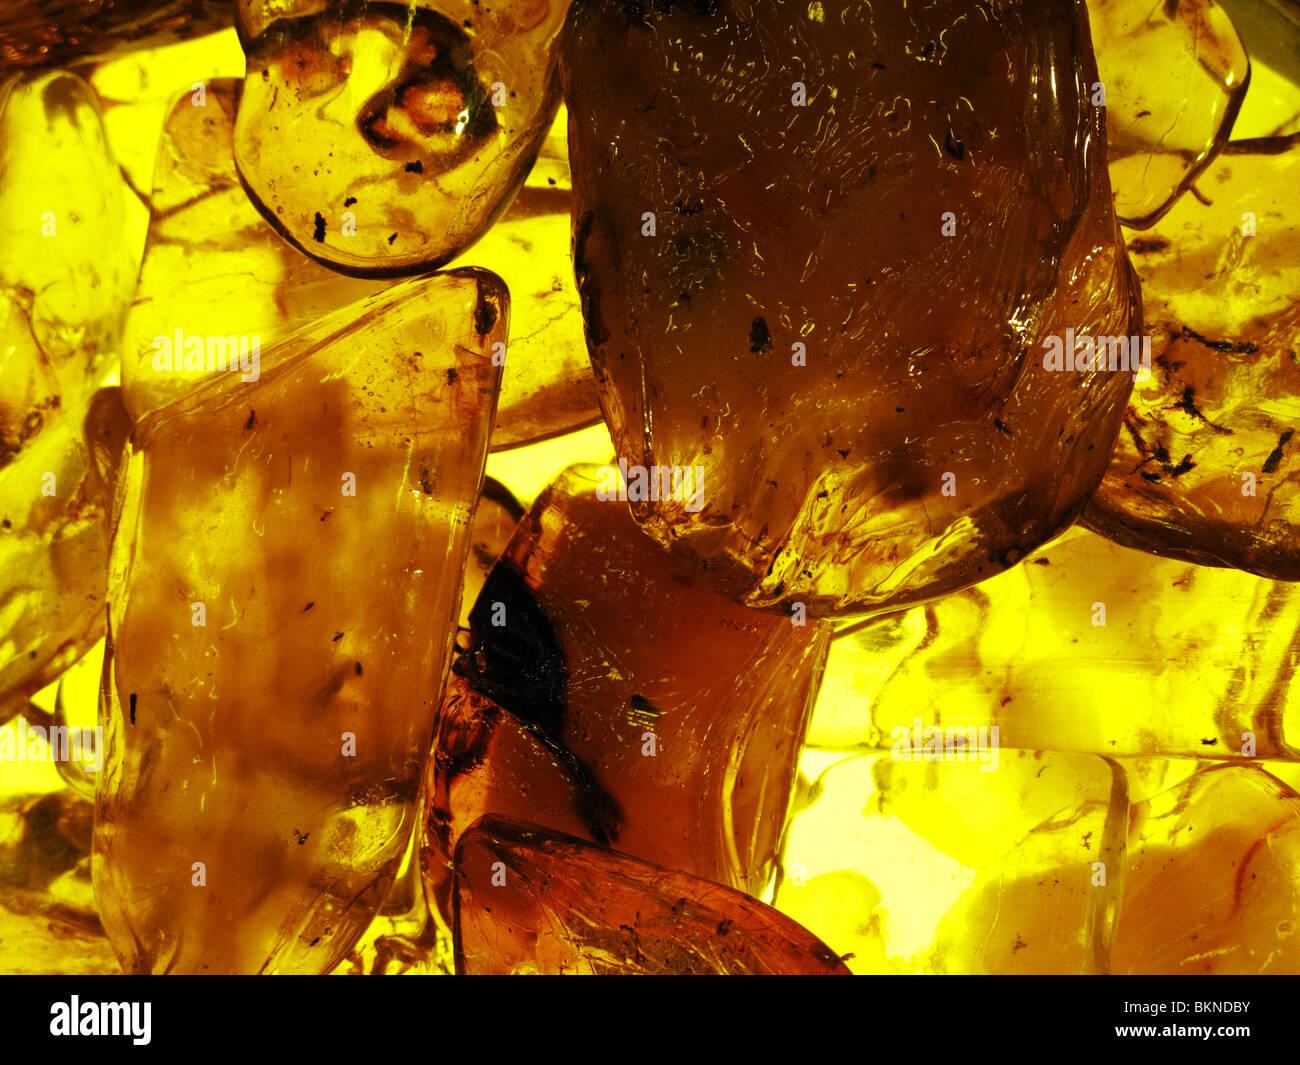 Close up of polished amber stones (fossilized tree resin) - Stock Image